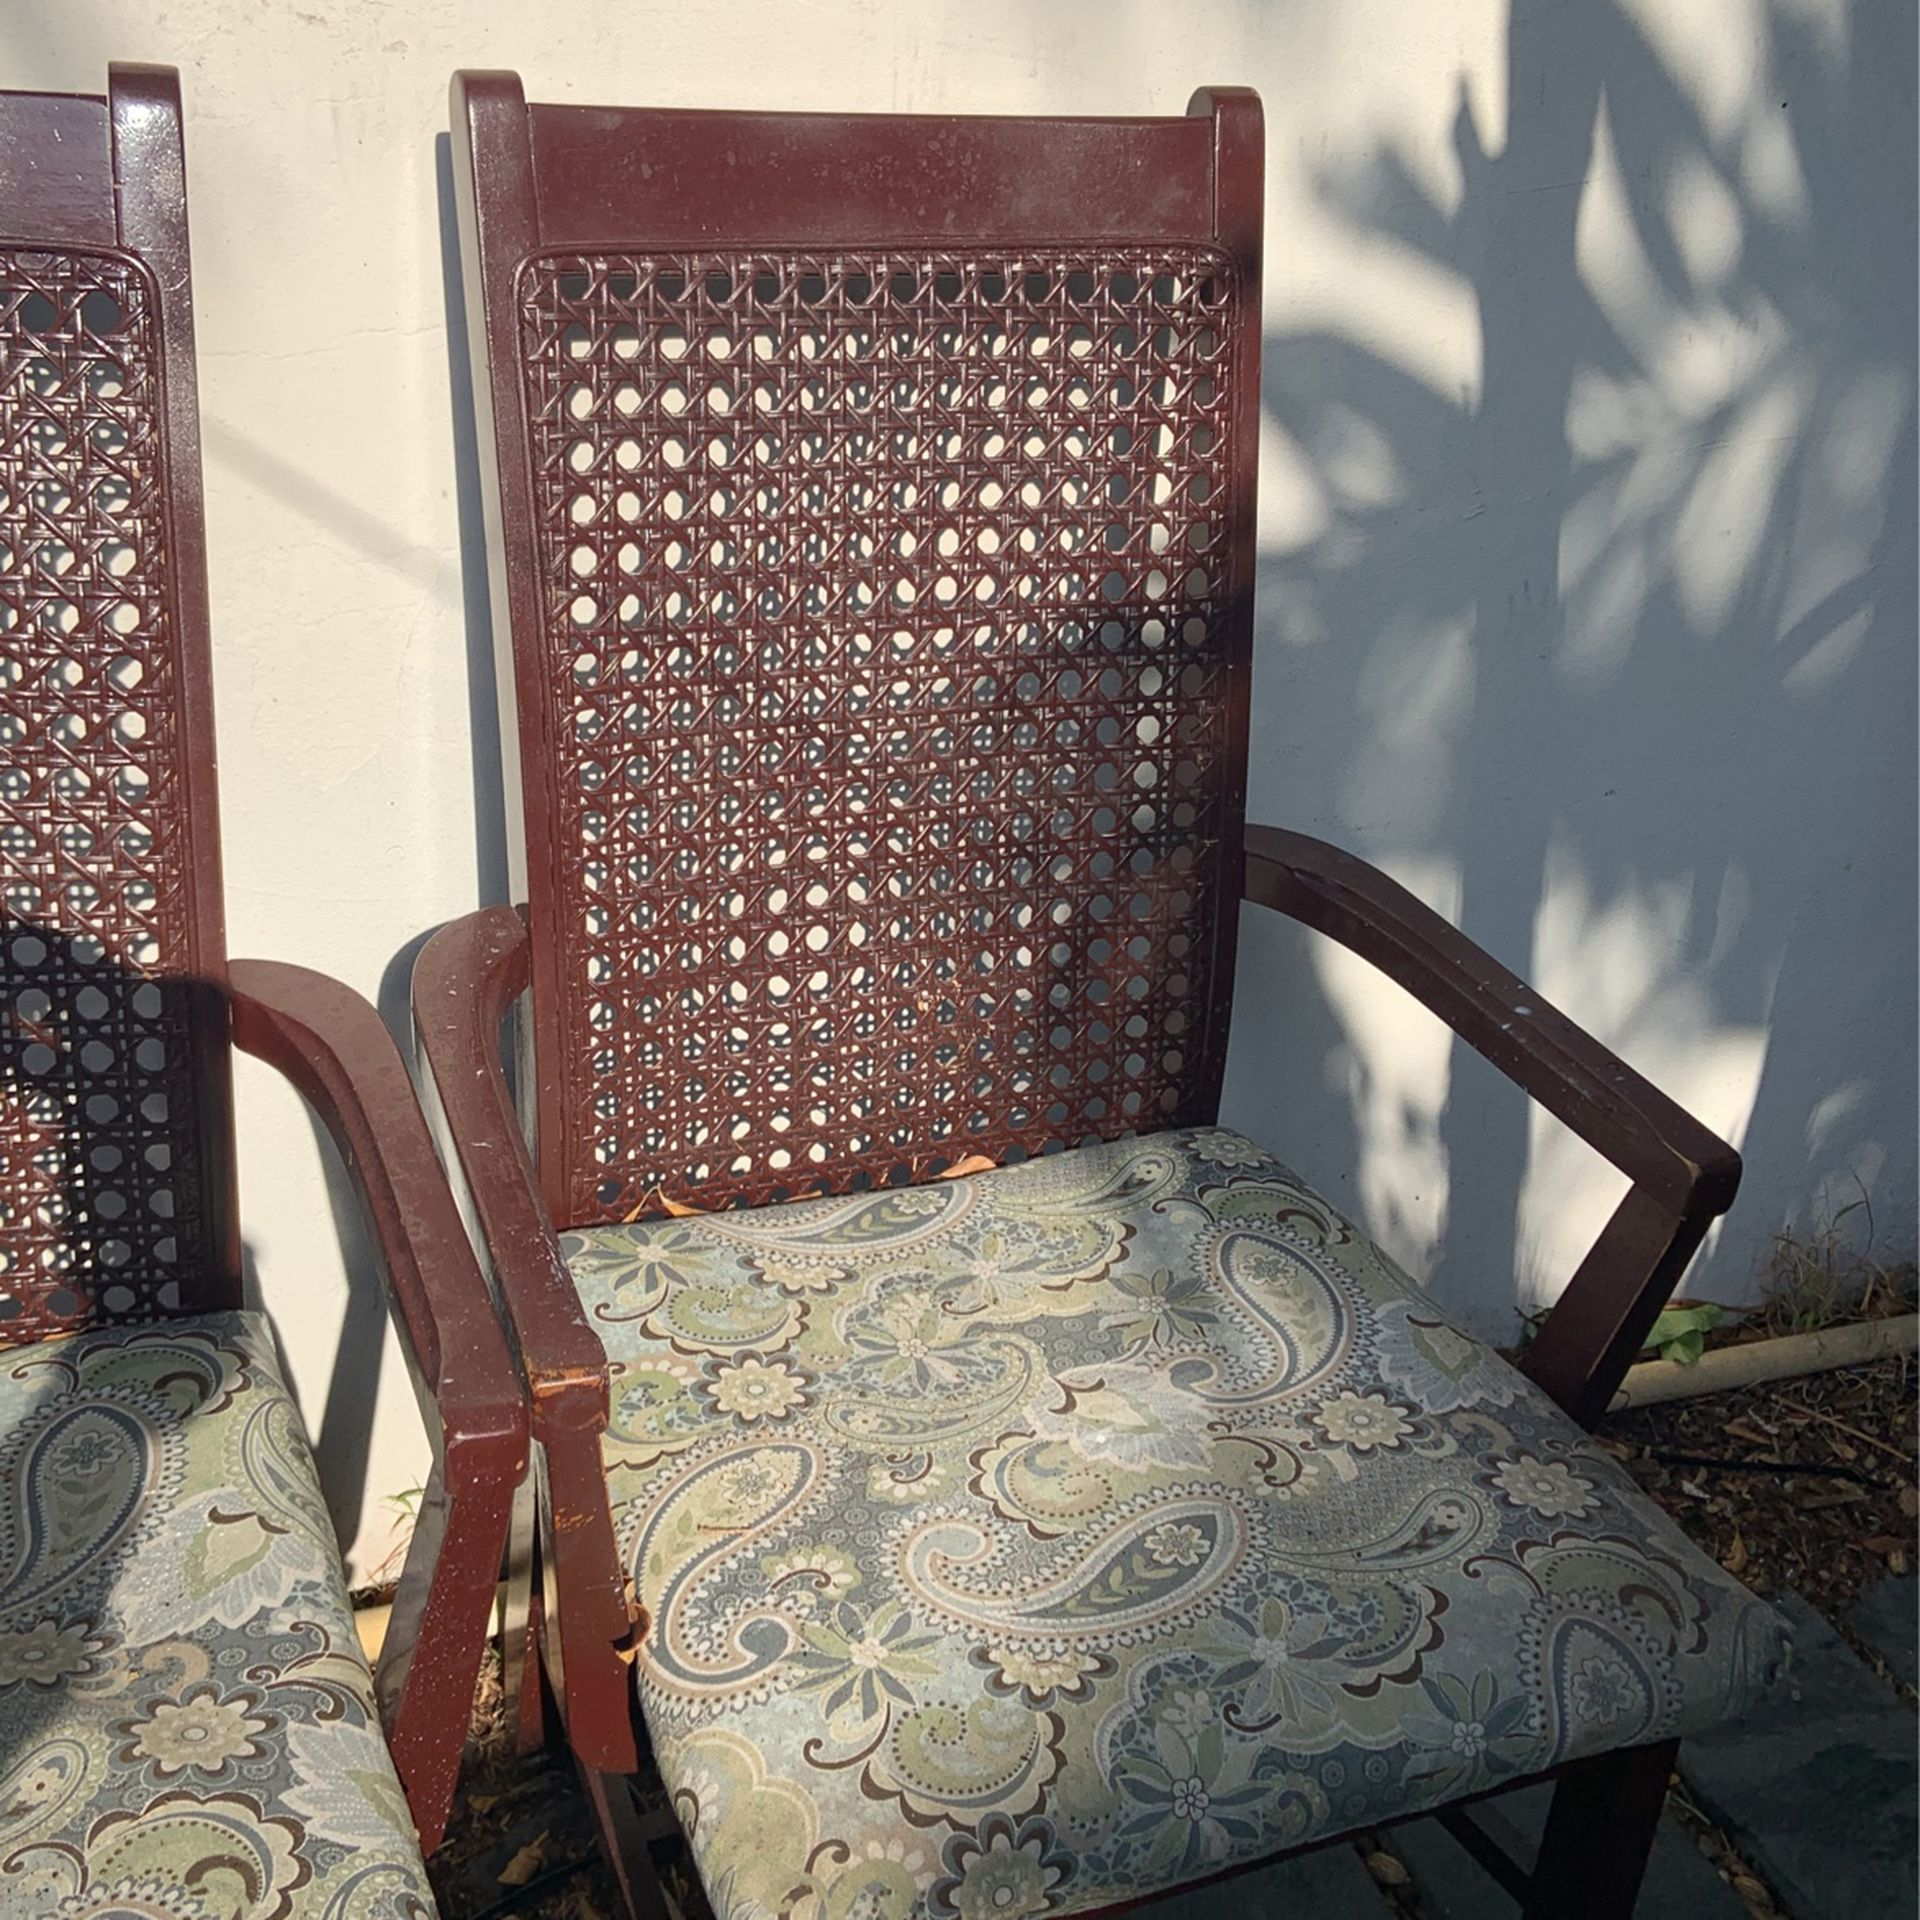 Solid wood, two Arm Cane Chairs From The 70's...chairs need restoring...cane In Good Condition